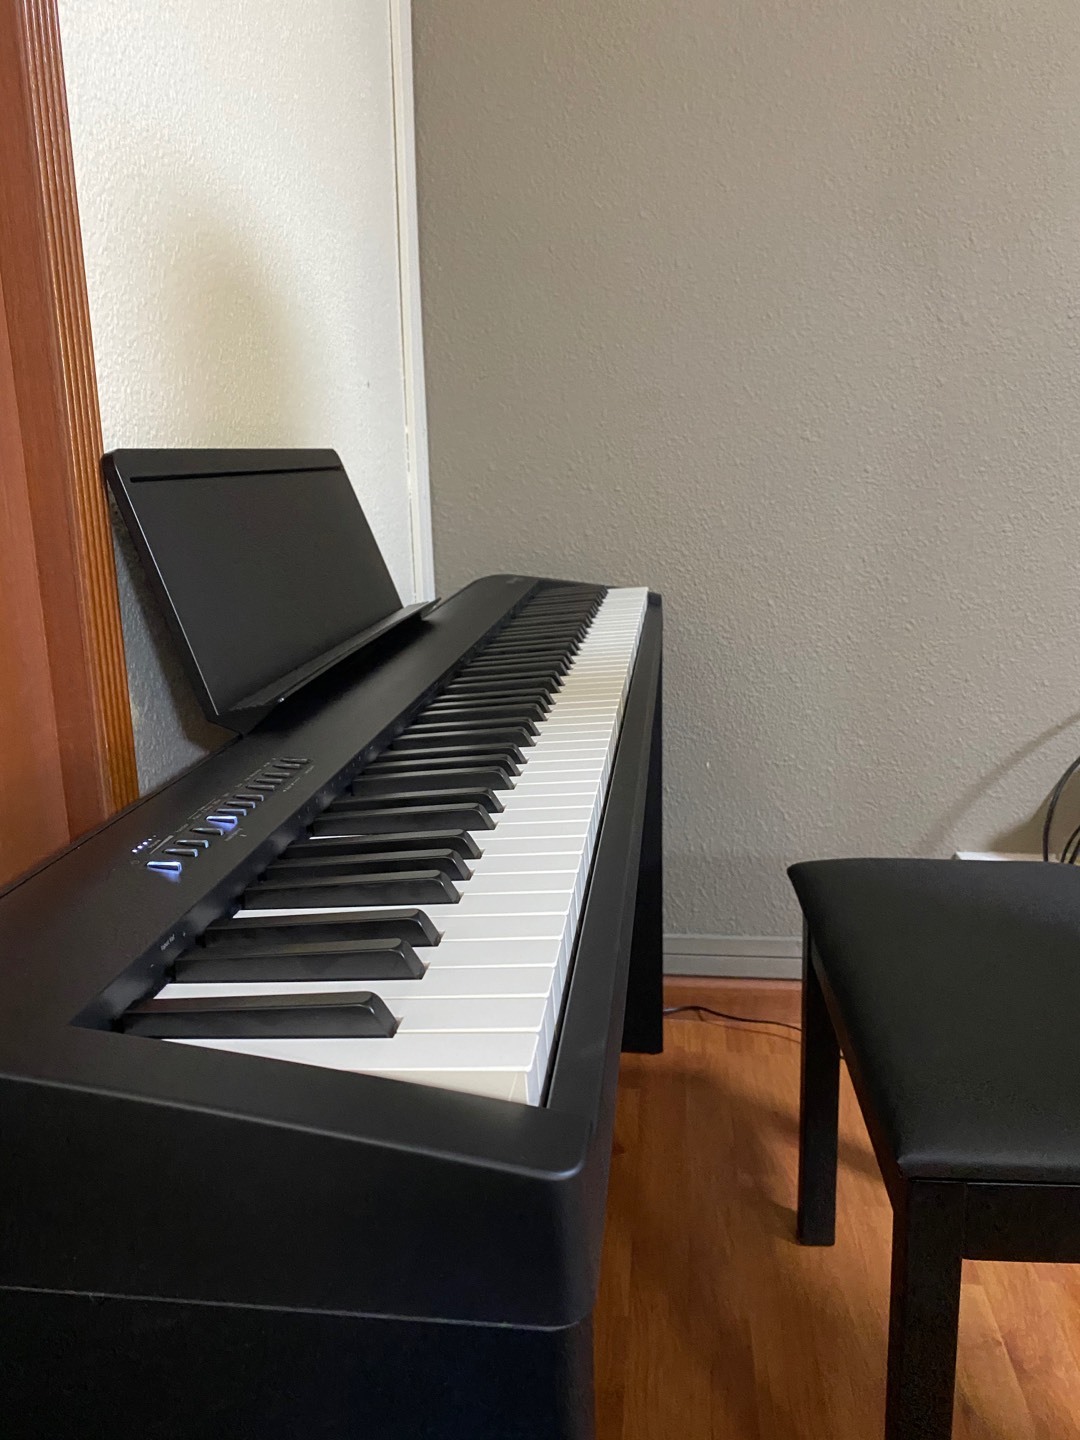 Very pleased with the product and overall a very good piano for the price.